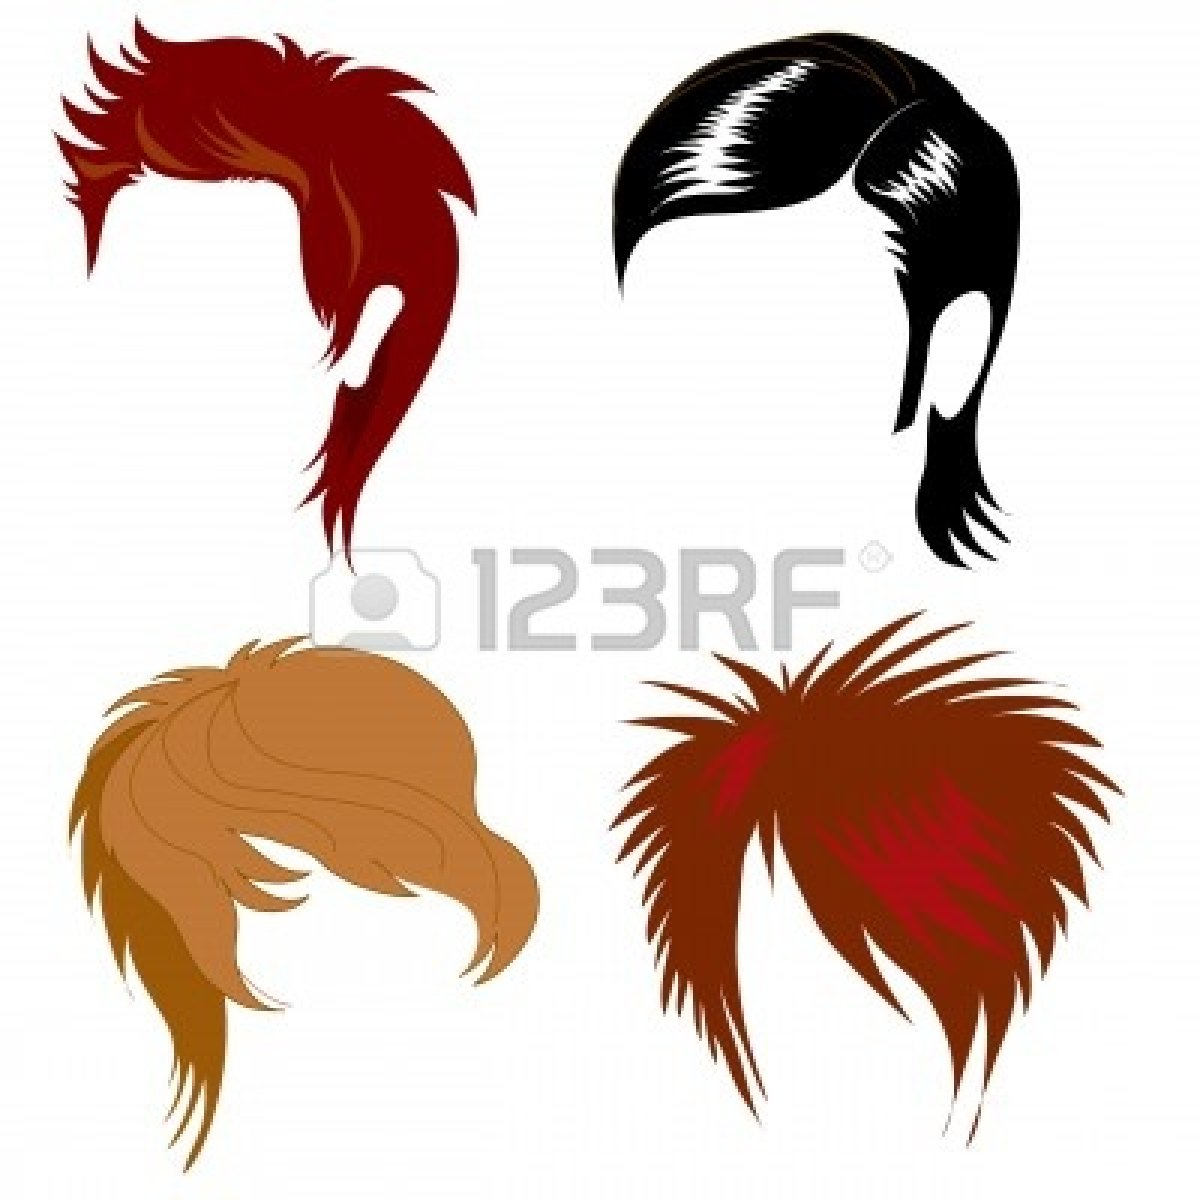 Hairstyles Clipart : hairstyles-clip-art-5072367-set-of-hair-styling-for-man.jpg